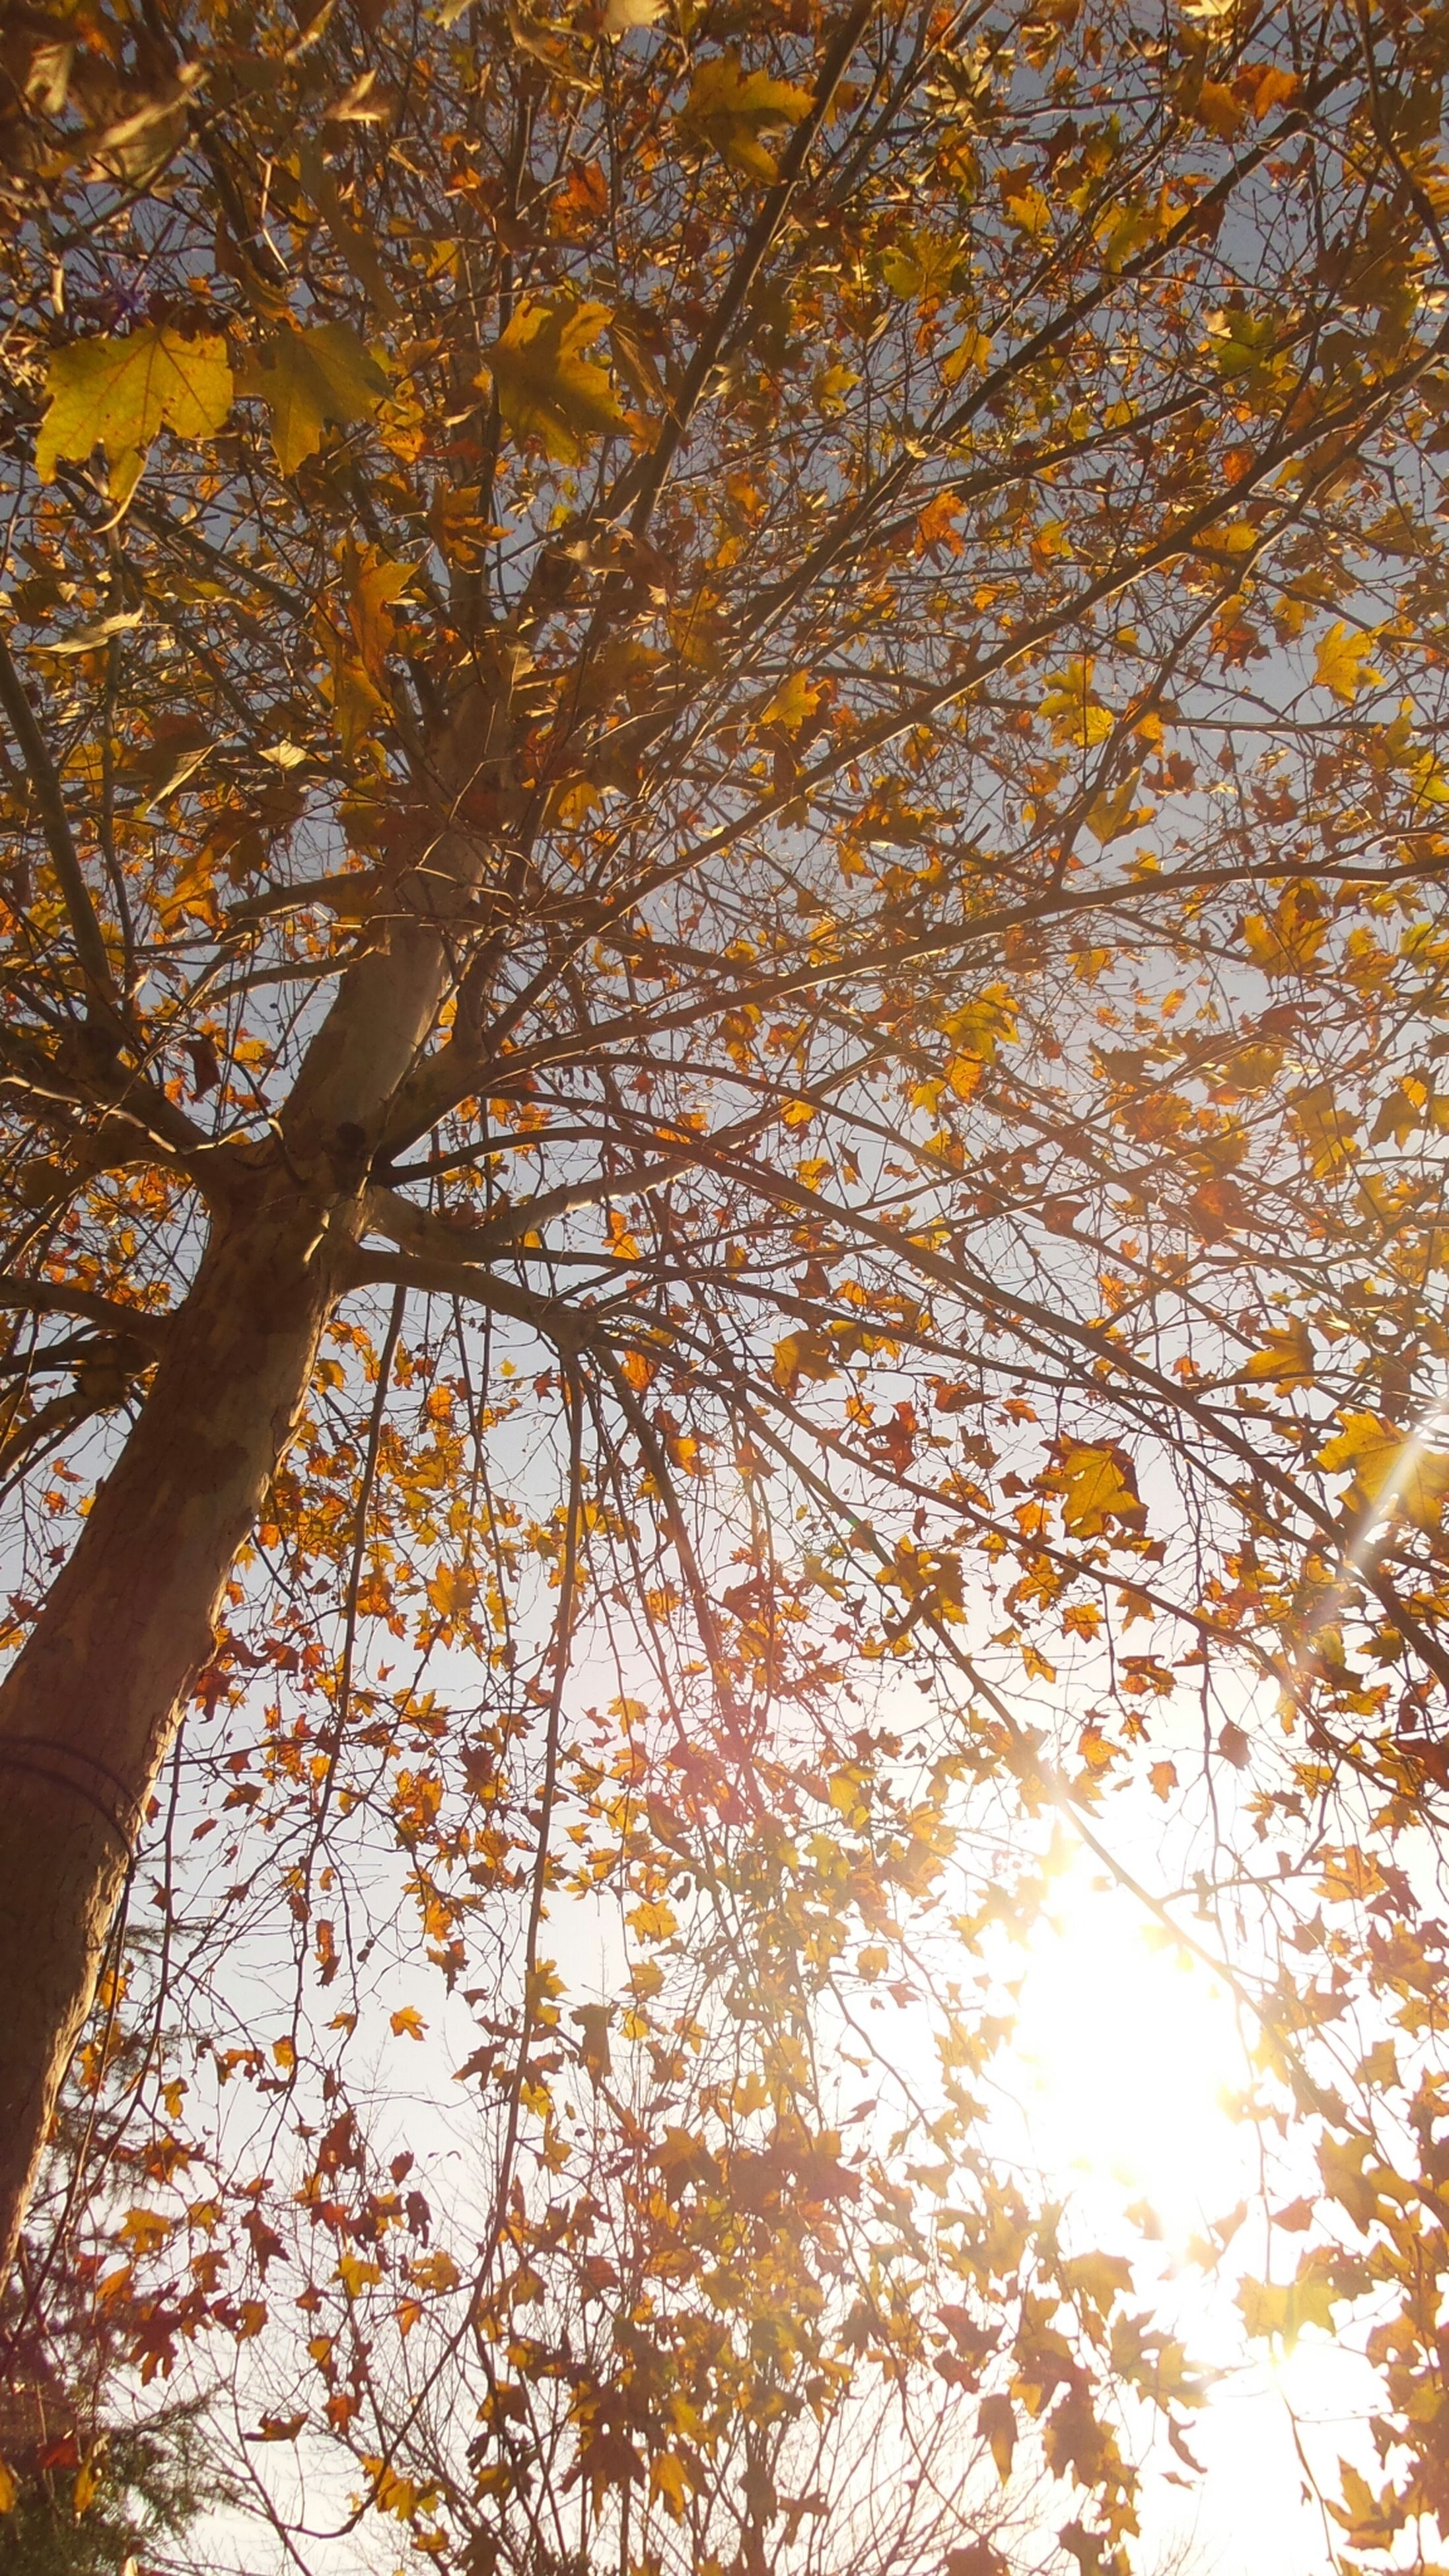 tree, branch, low angle view, growth, yellow, beauty in nature, nature, tranquility, autumn, sunlight, orange color, sun, scenics, season, change, sunset, outdoors, tranquil scene, sky, no people